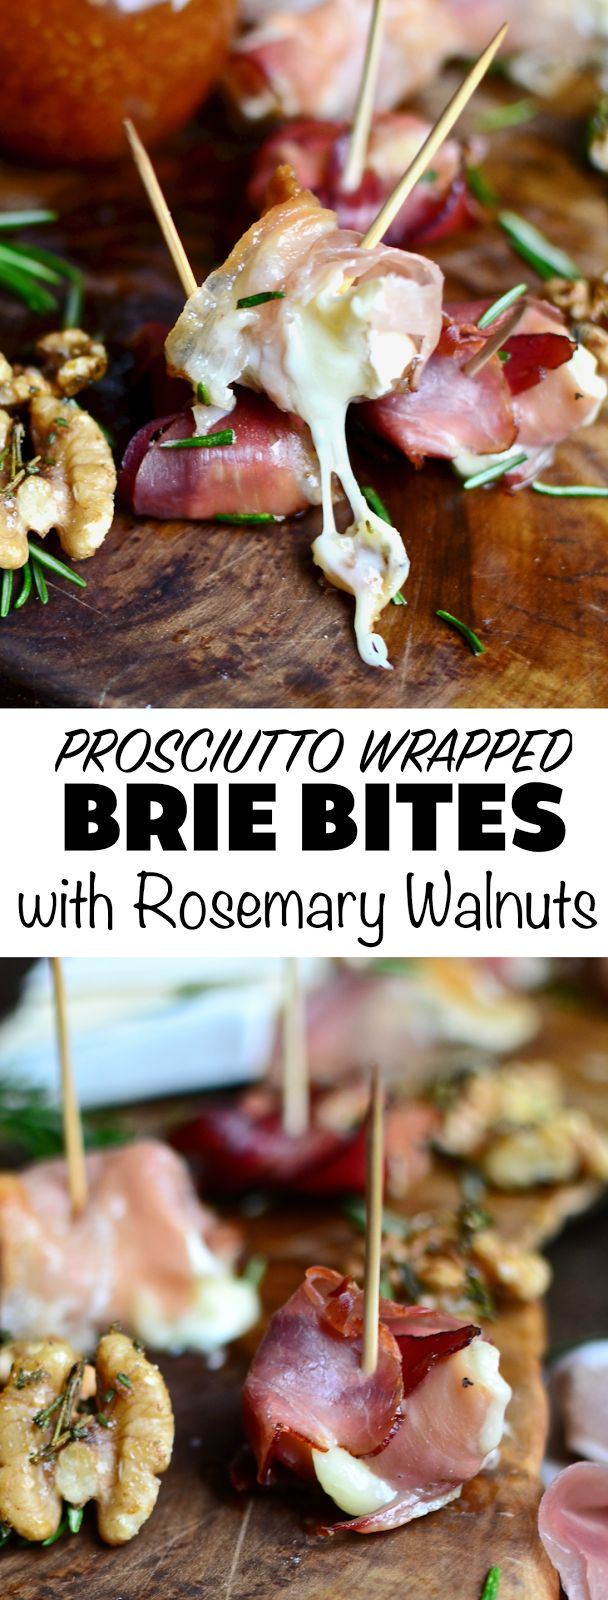 These brie bites make the perfect gourmet appetizers! They're naturally gluten free and exploding with flavor. I dipped mine in gooseberry ginger jam!